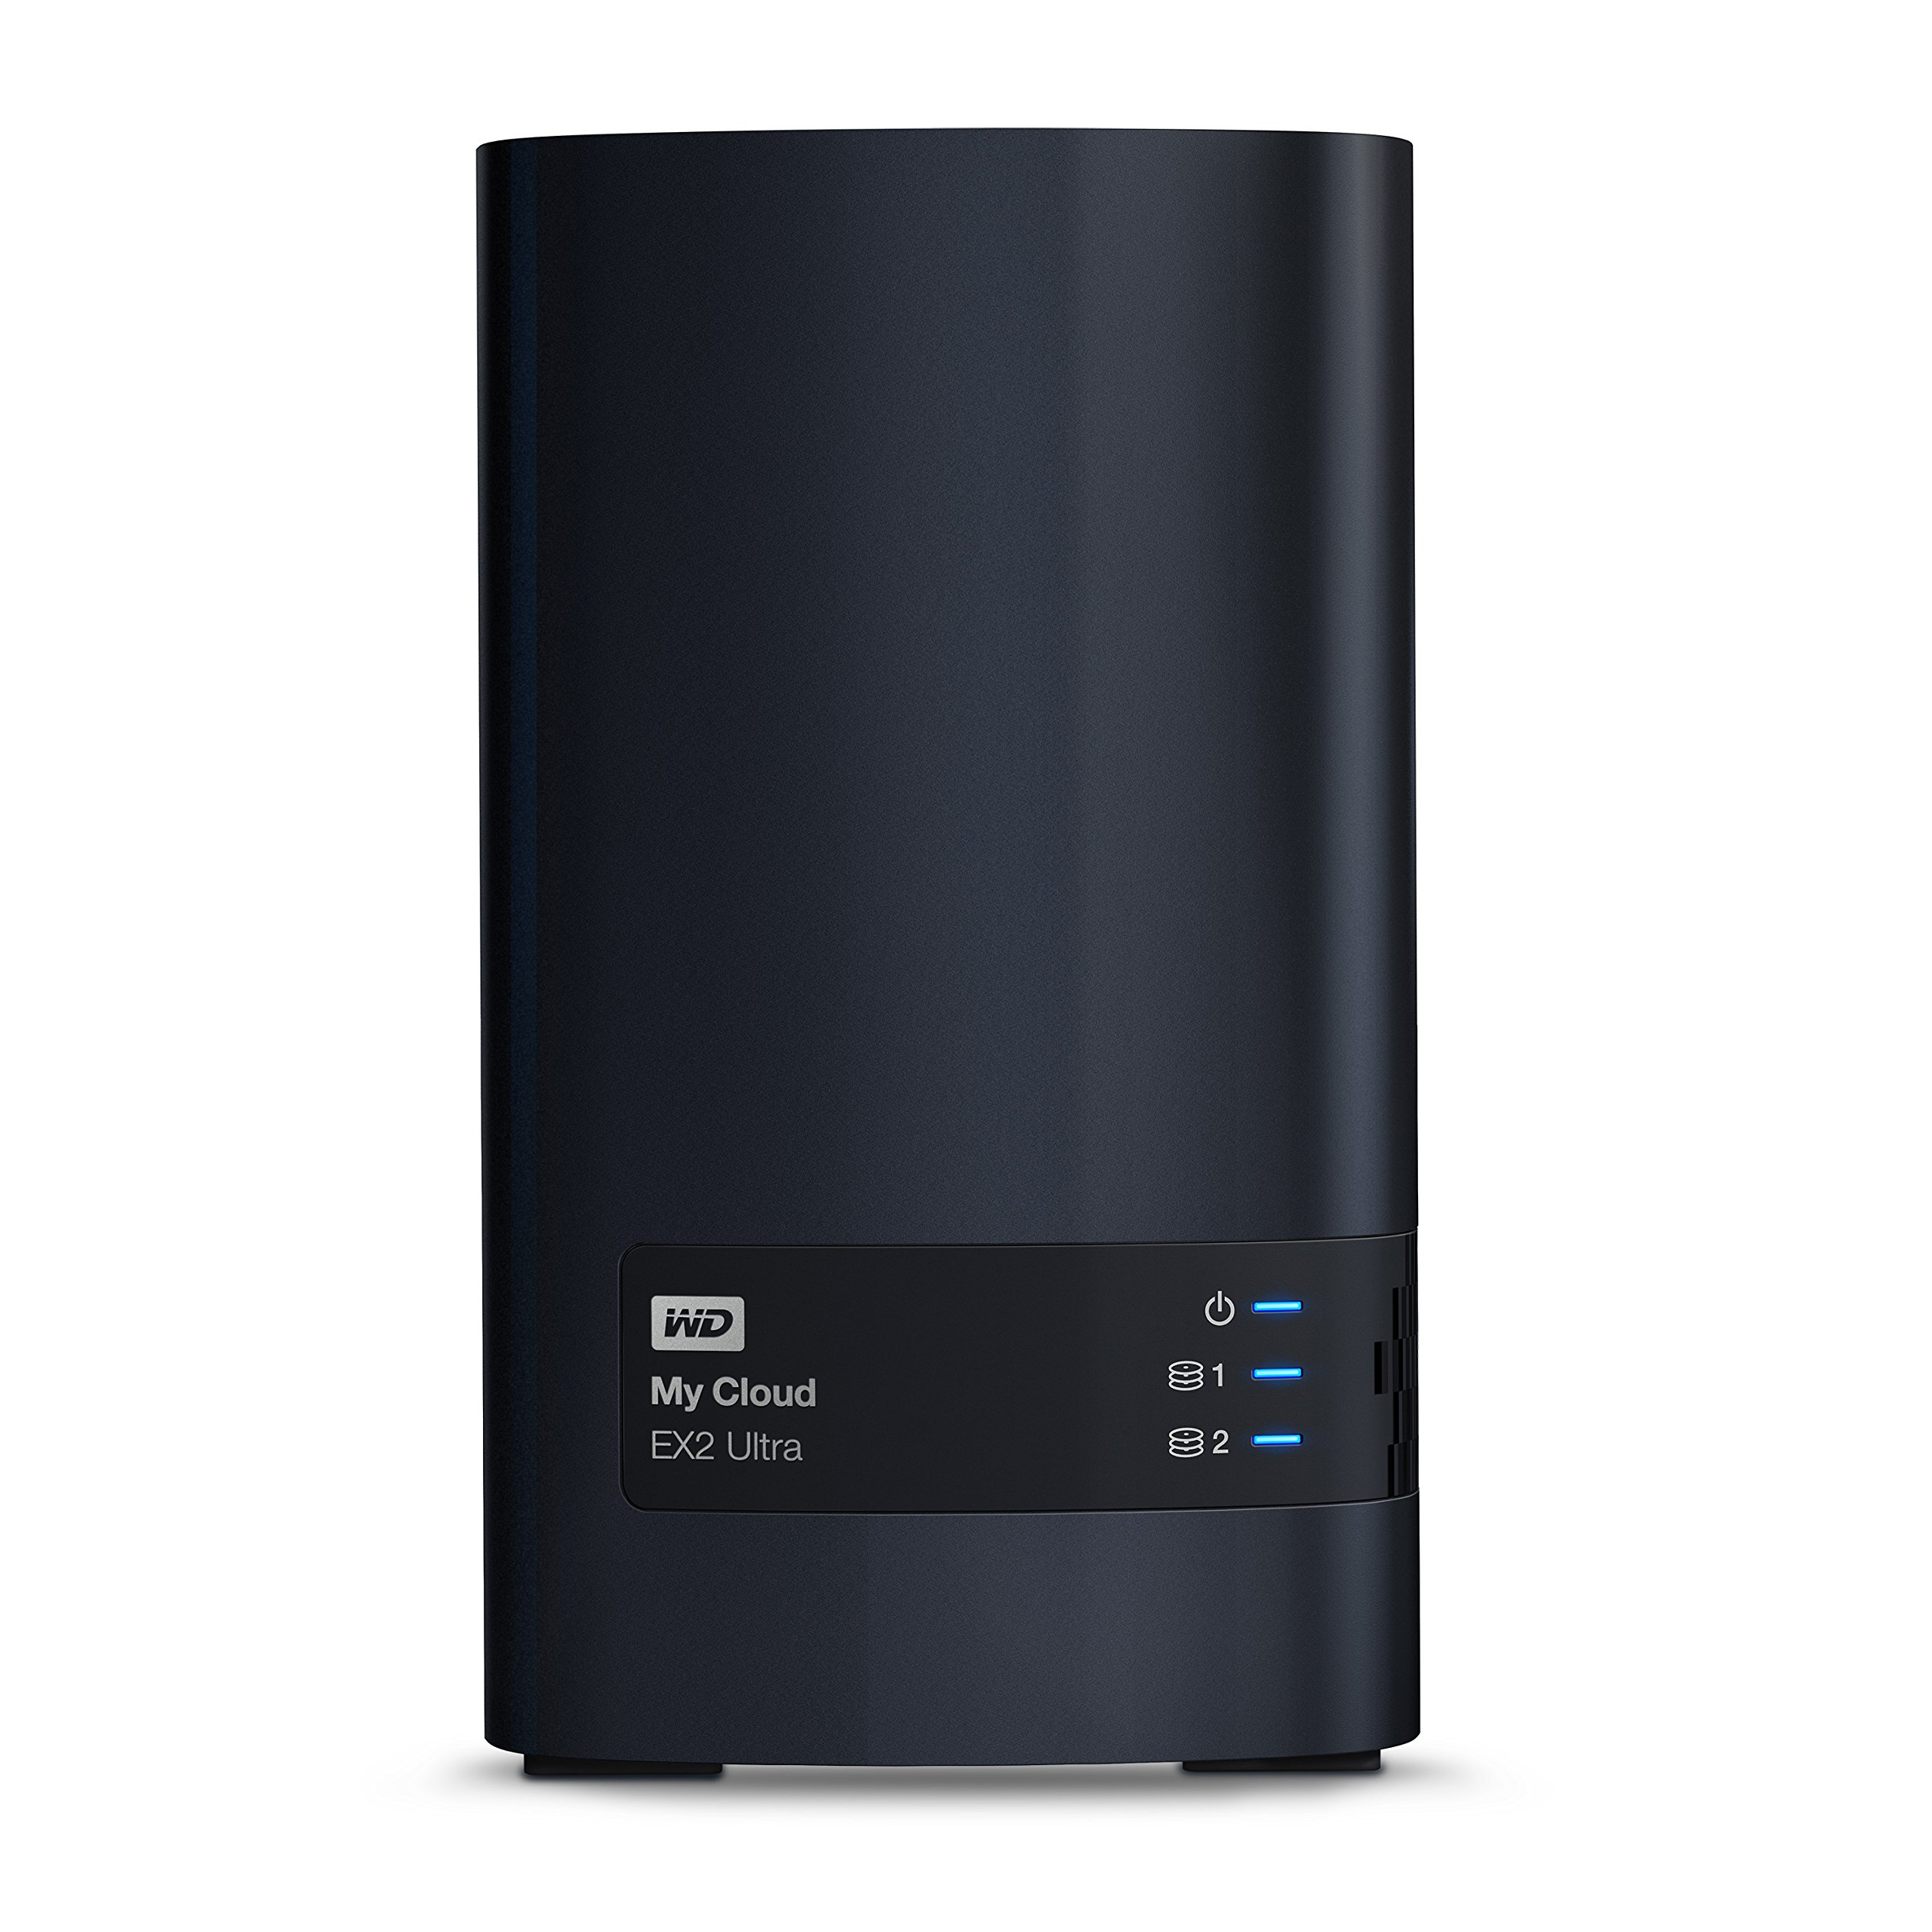 WD Diskless My Cloud EX2 Ultra Network Attached Storage - NAS - WDBVBZ0000NCH-NESN